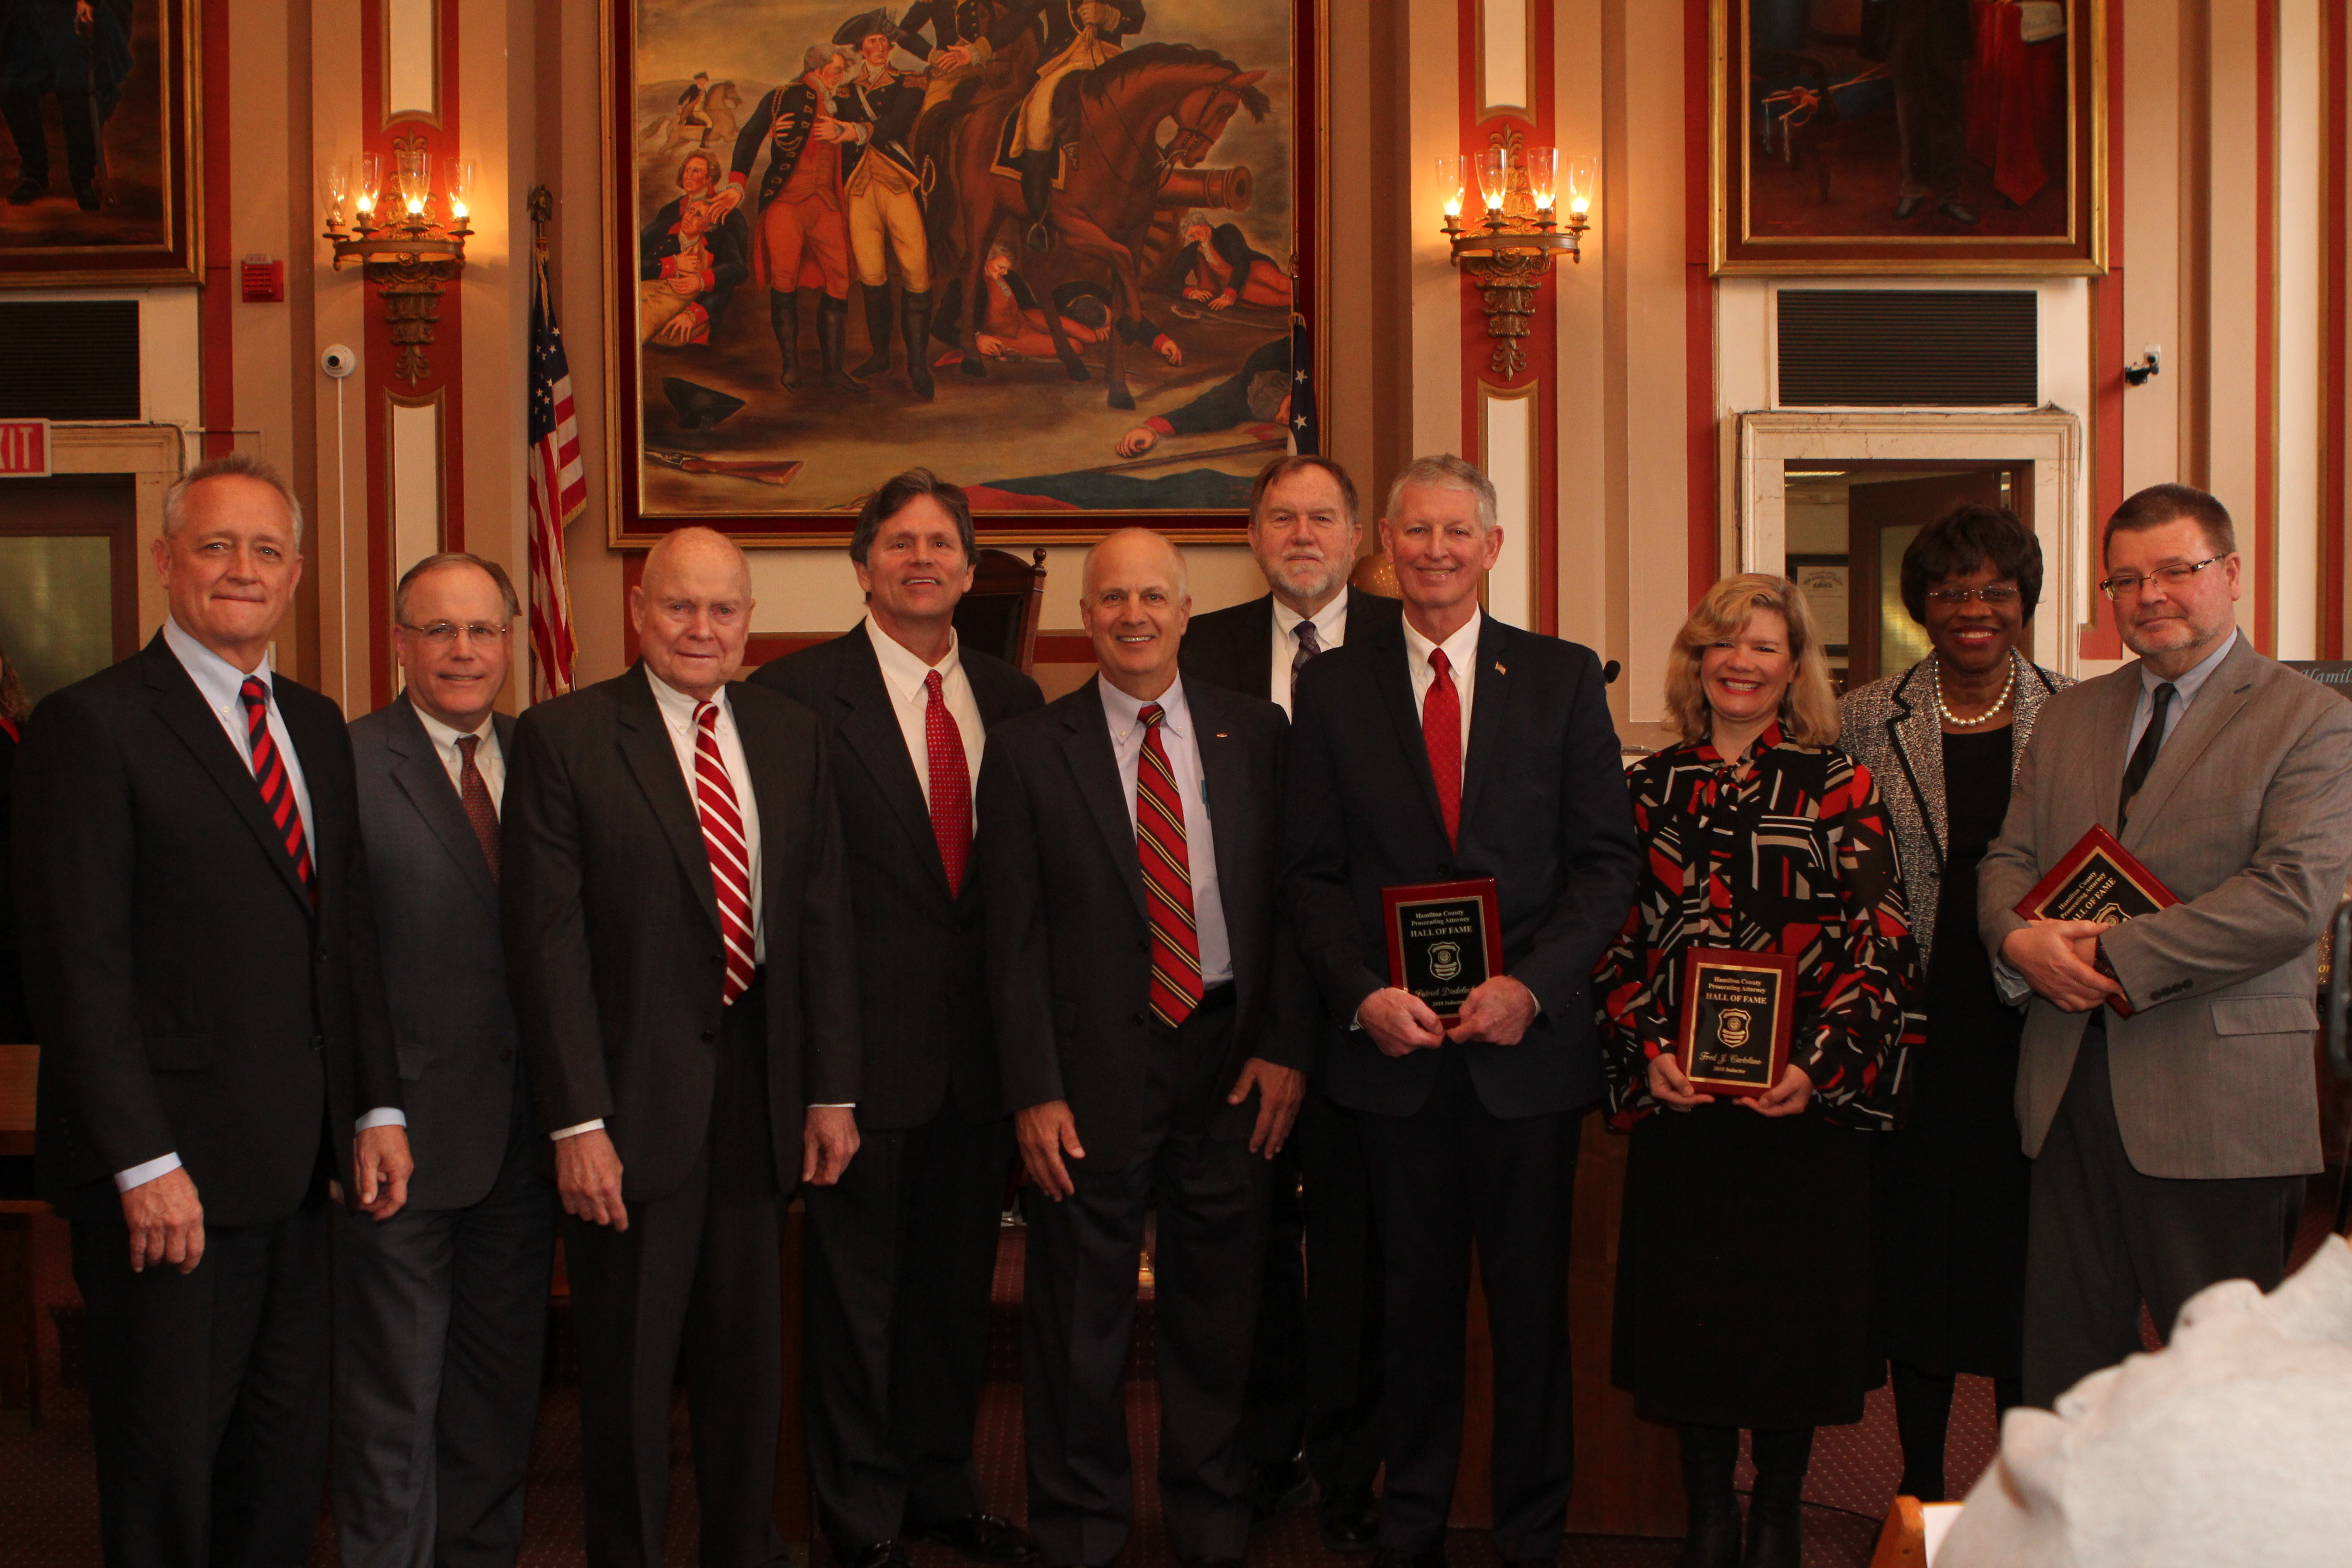 Images from Prosecutors Hall of Fame